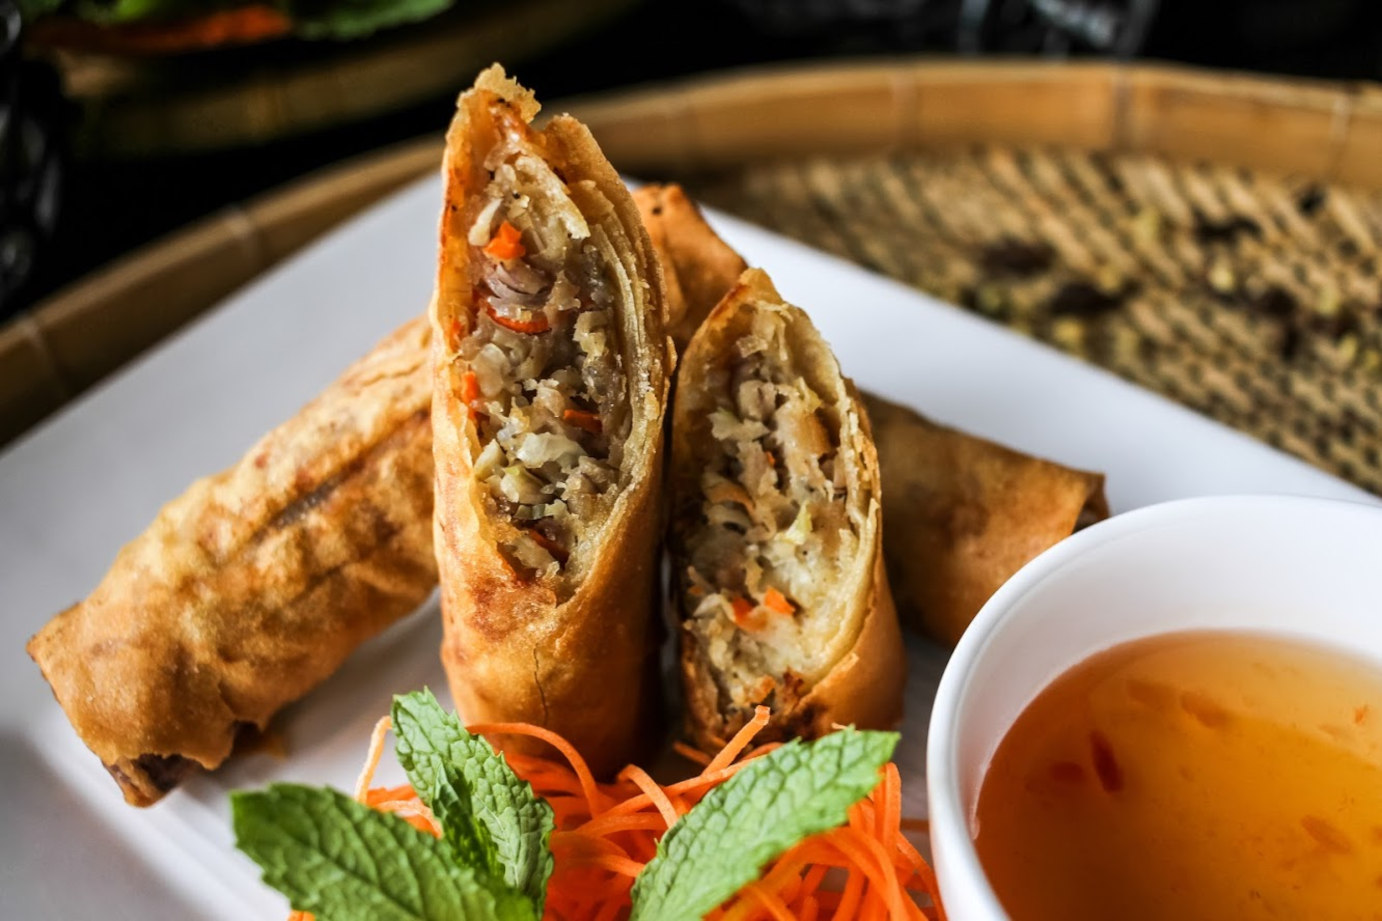 Pastry filled with rice, meat and vegetables